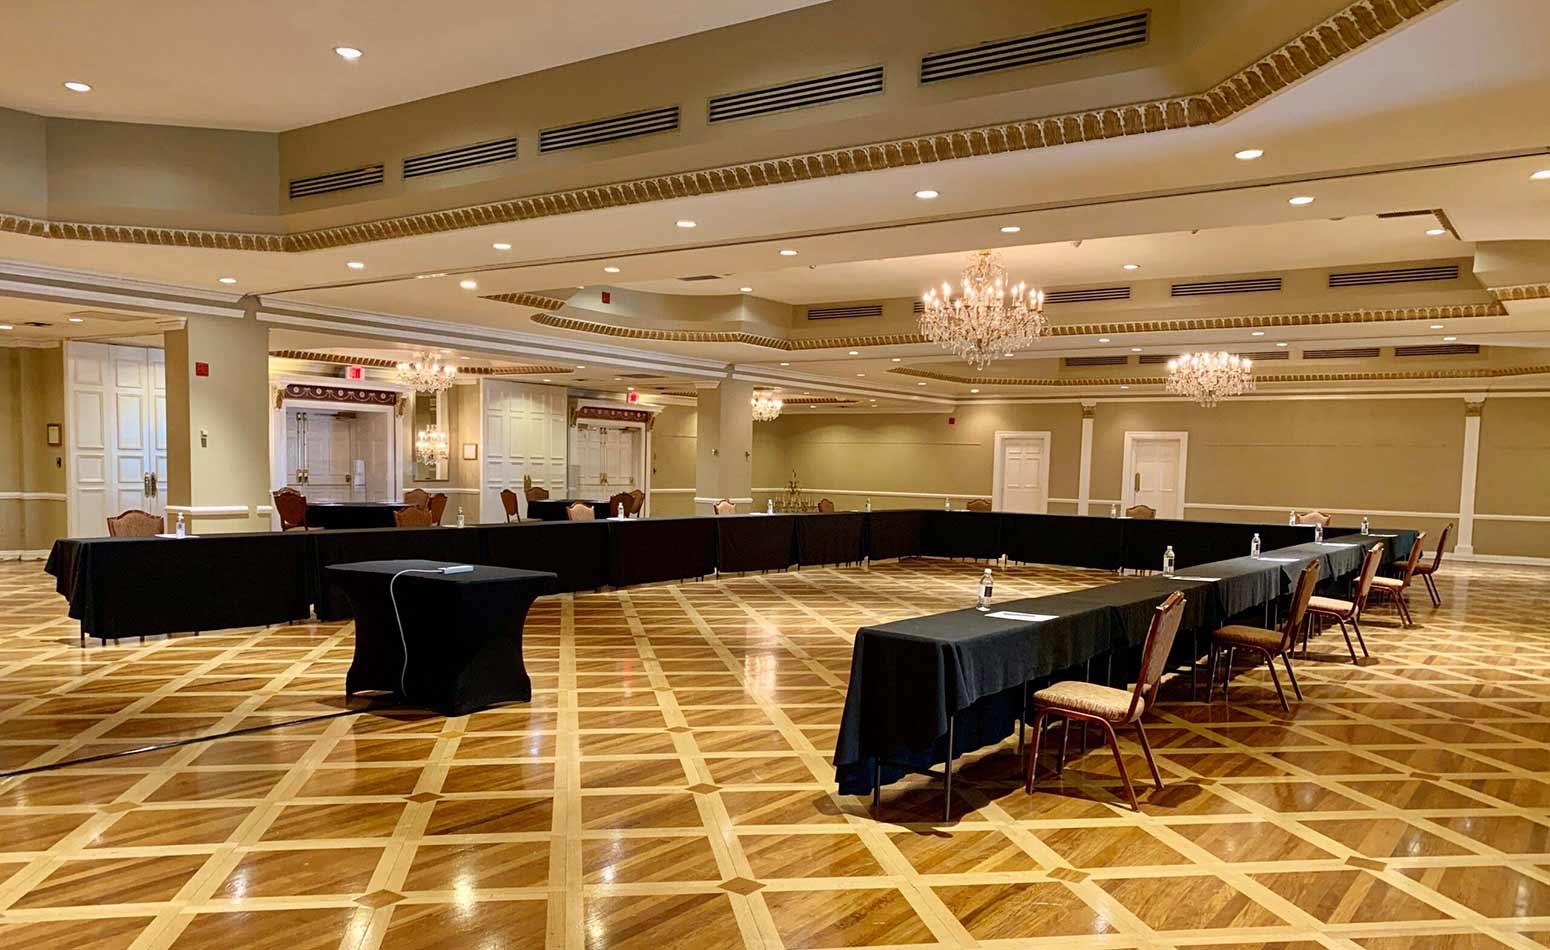 Small meeting set up at Queen's Landing Hotel during covid-19 pandemic